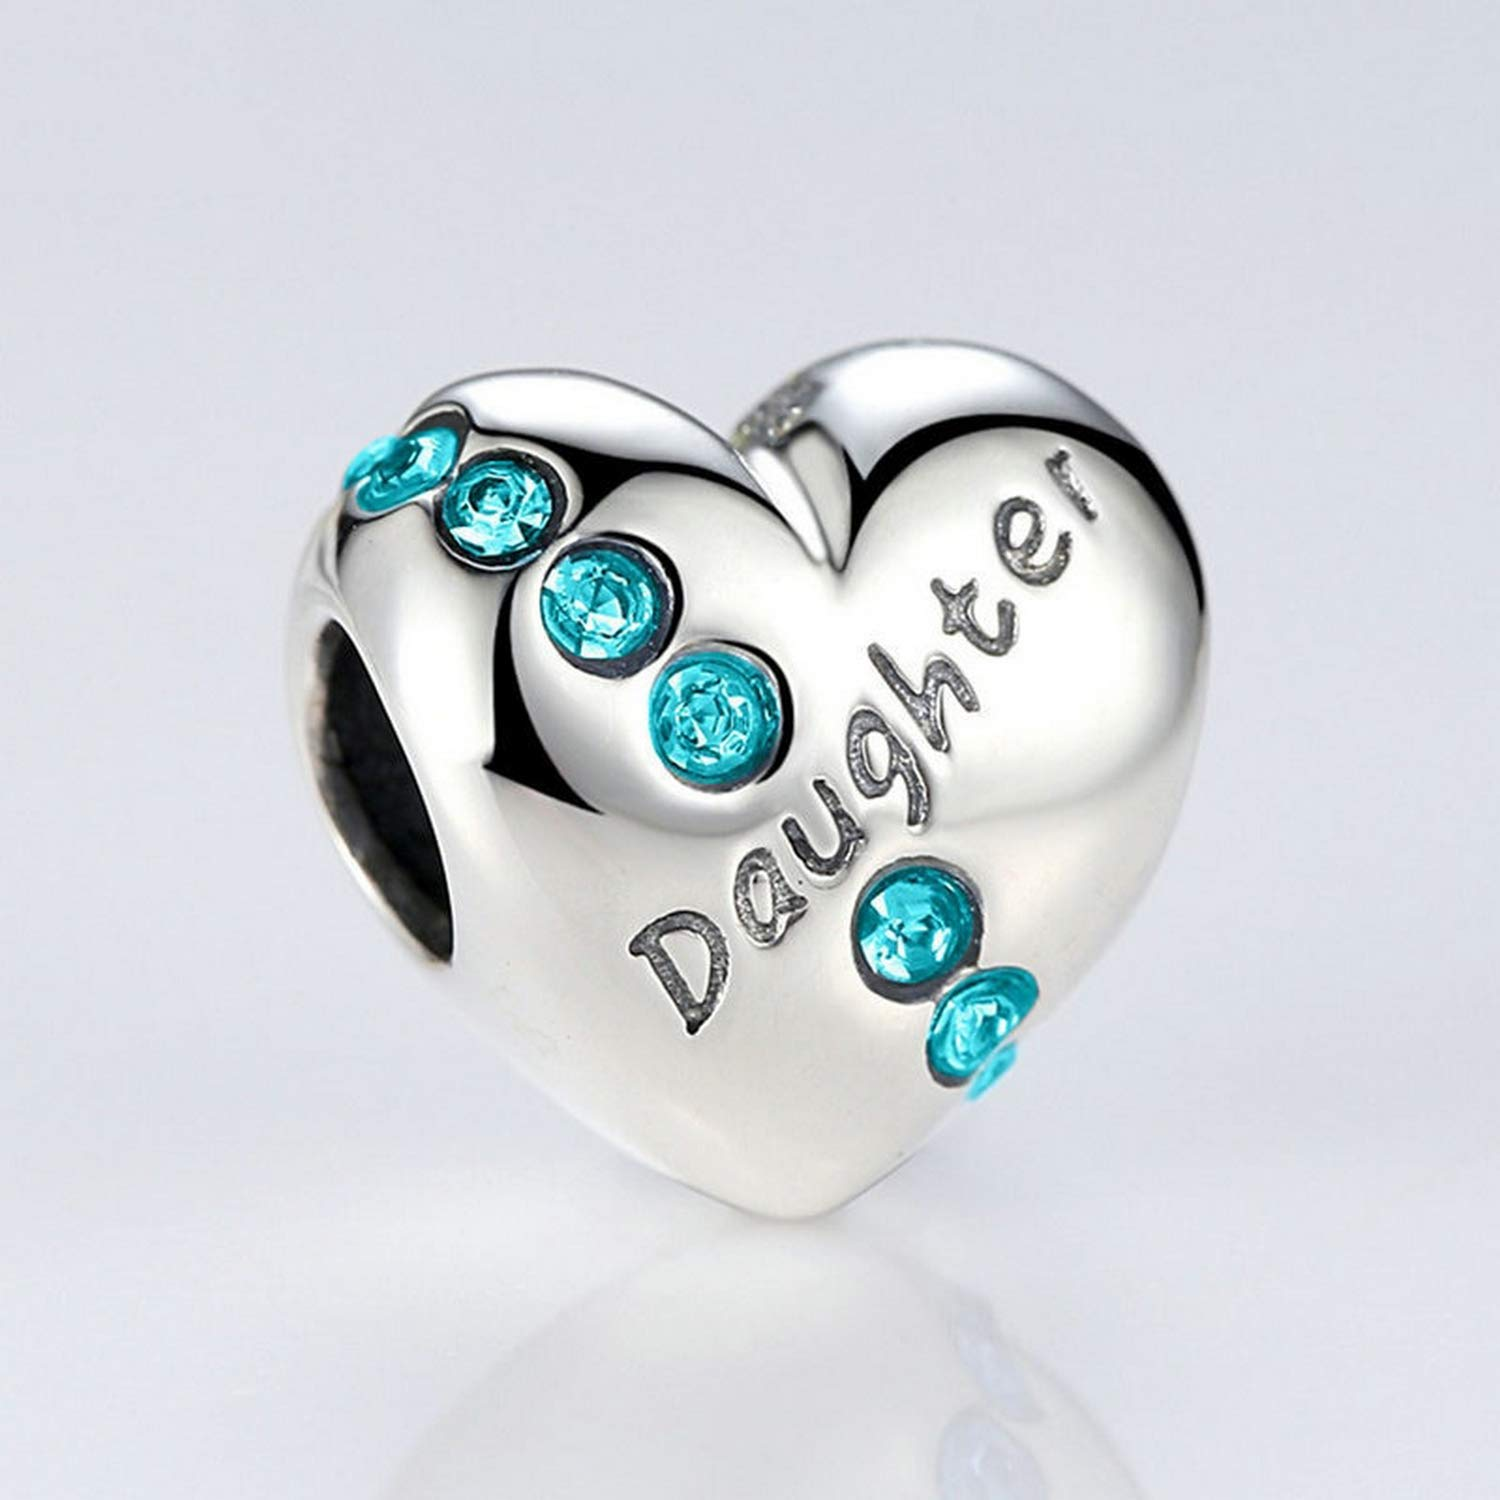 Evereena Silver Beads Bracelet for Girls Daughter Love Heart Gift Charm Beads with Blue Luxury CZ Stone Womens Jewelry